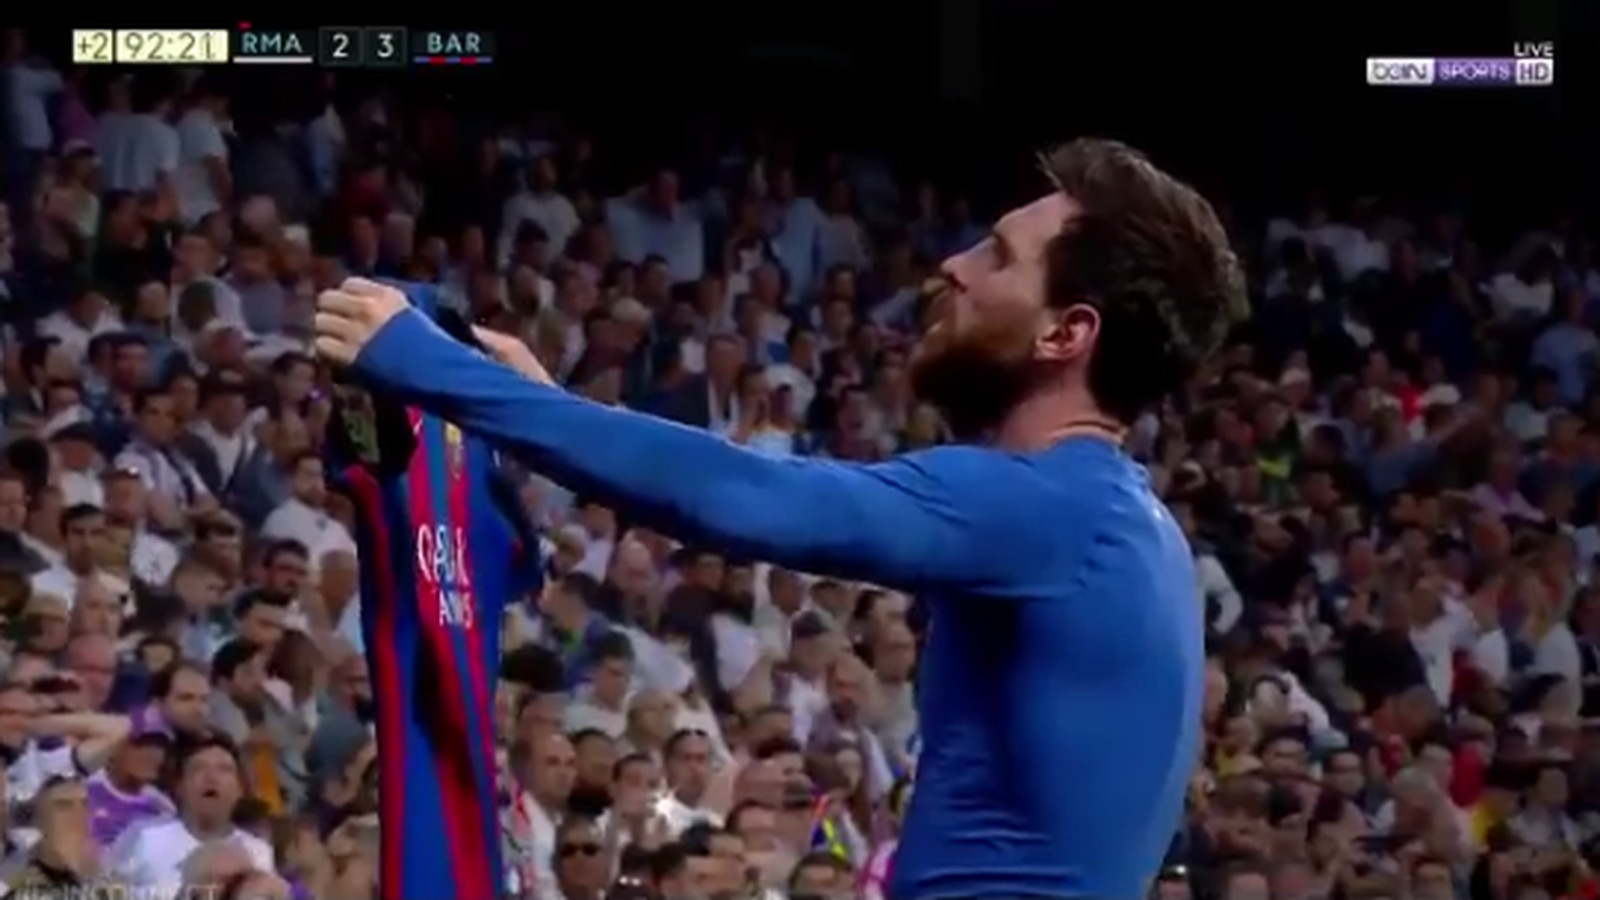 Lionel Messi Had An Epic Celebration After His Game